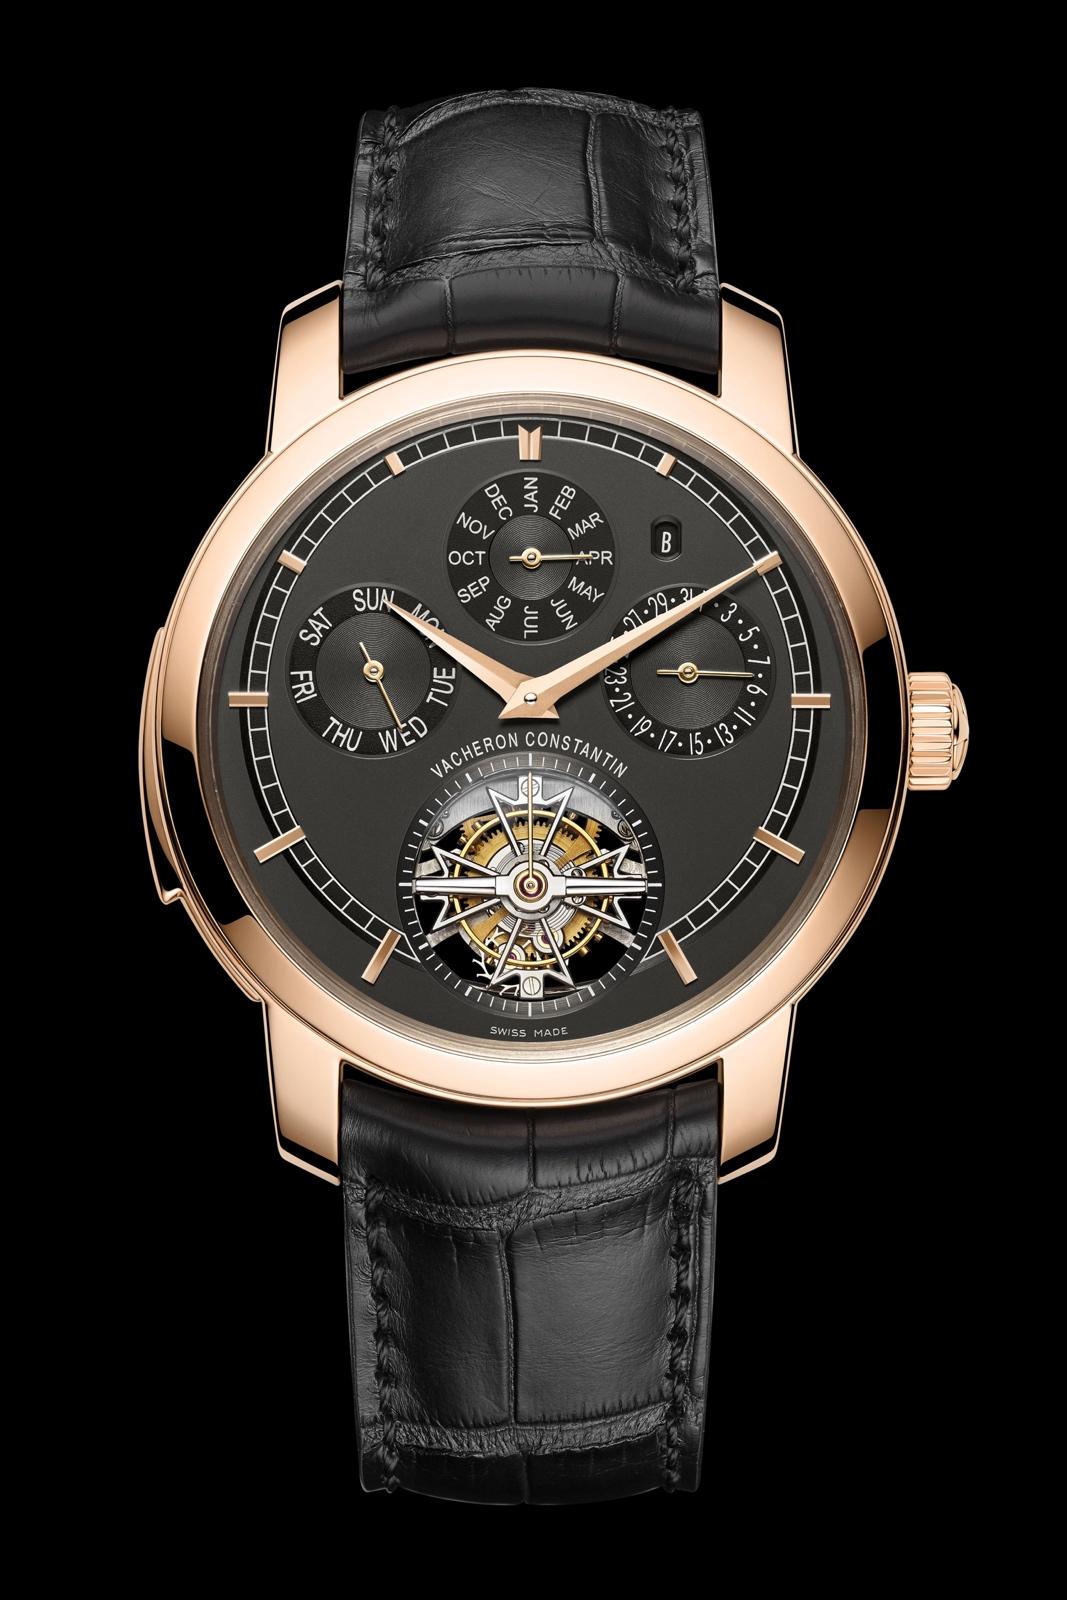 Vacheron Constantin Traditionnelle Slate Grey - Calibre 2755